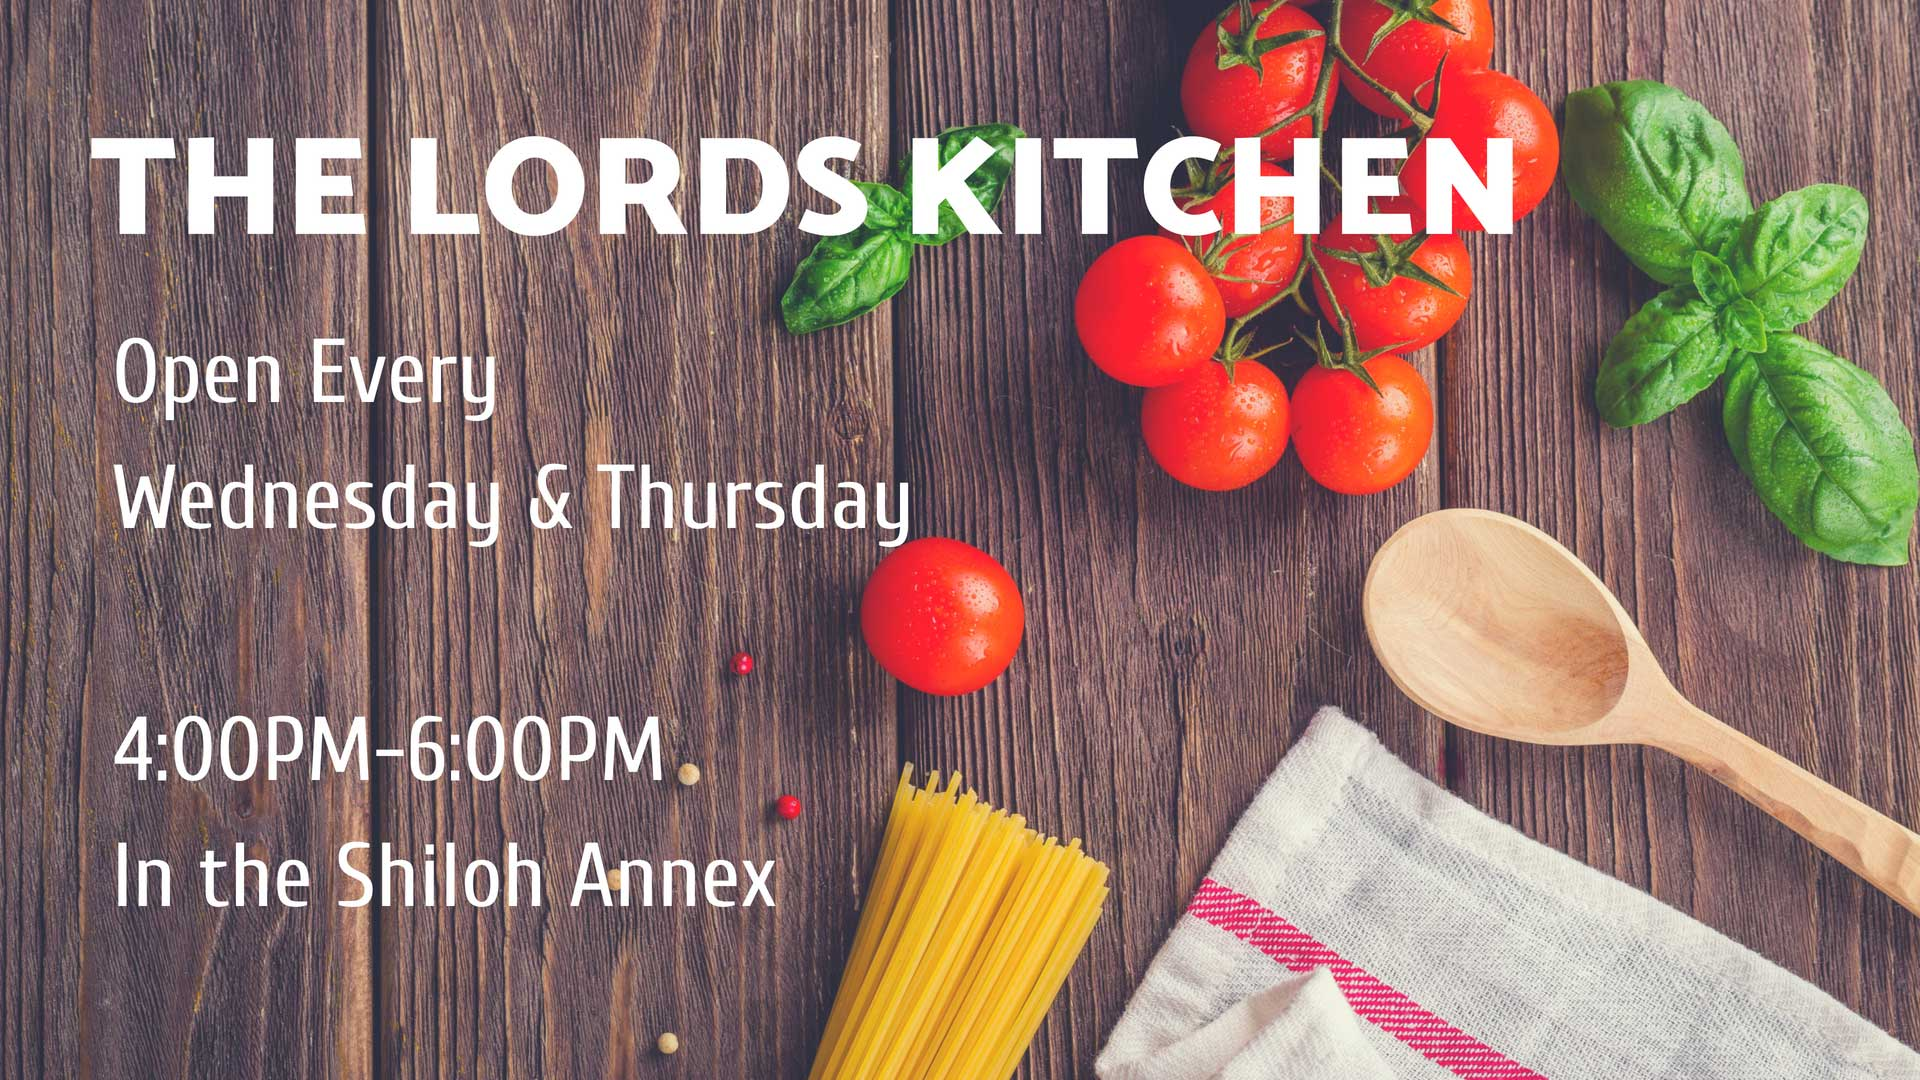 The Lord's Kitchen